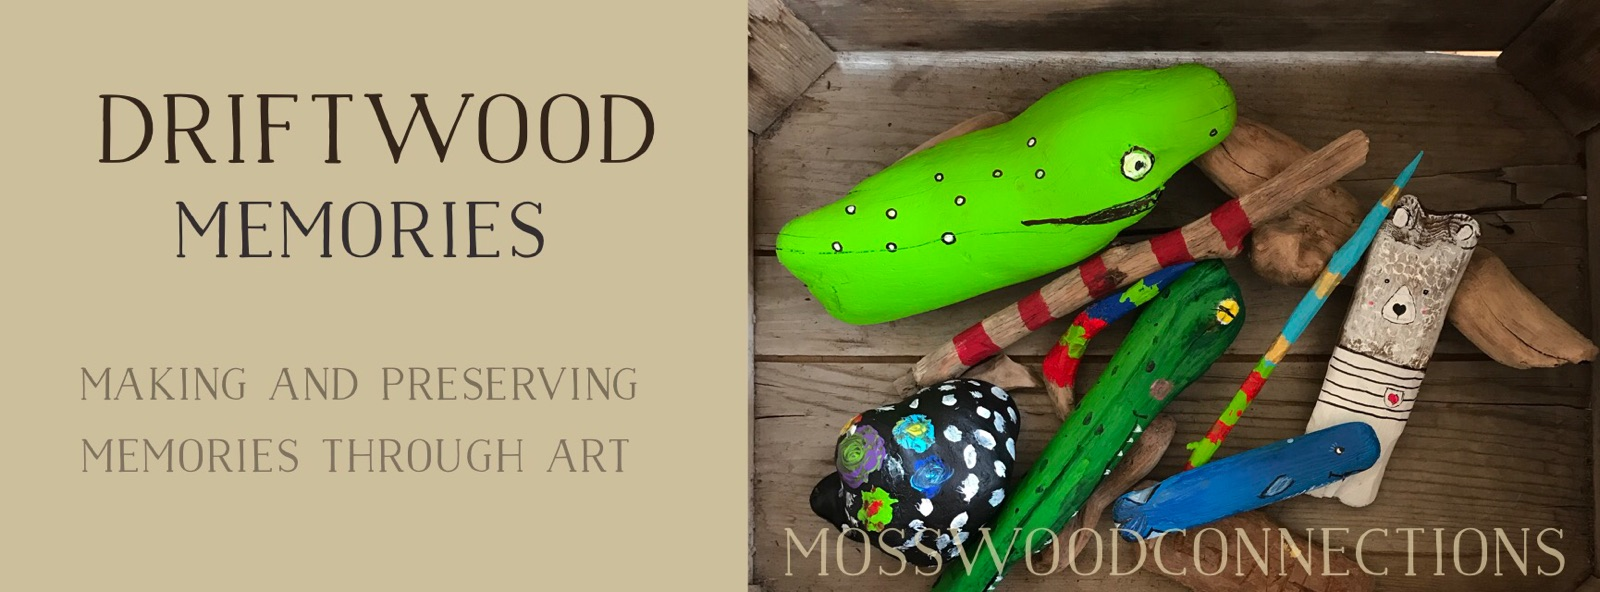 Driftwood Memories #mosswoodconnections #gardeningwithkids #seedbombs #sensory #Valentine's